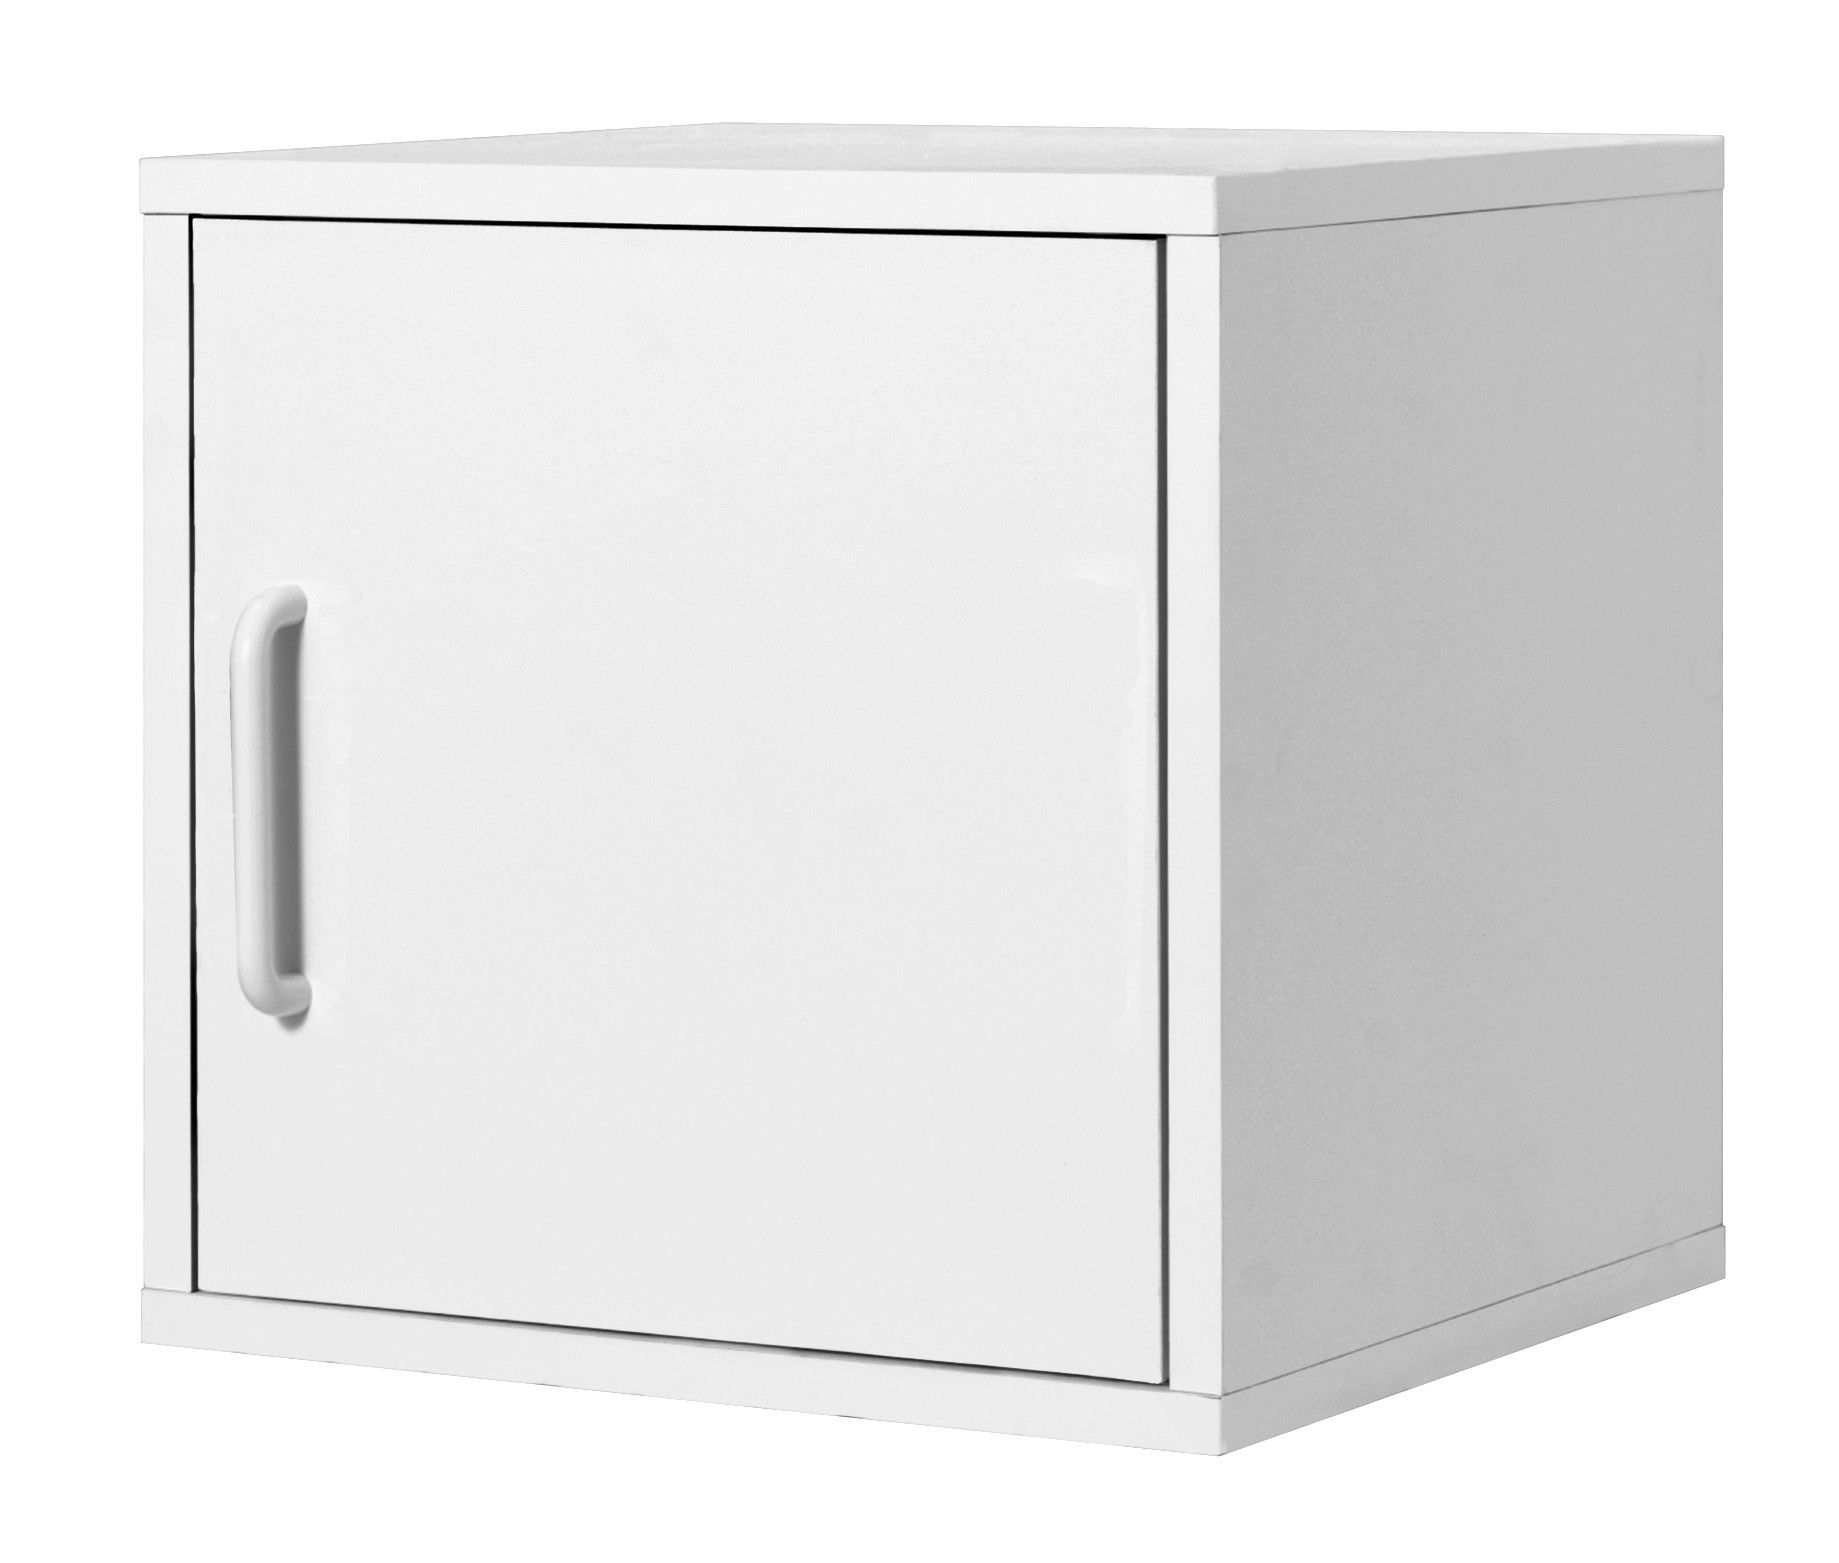 Foremost Modular Storage Cube with Door & Reviews